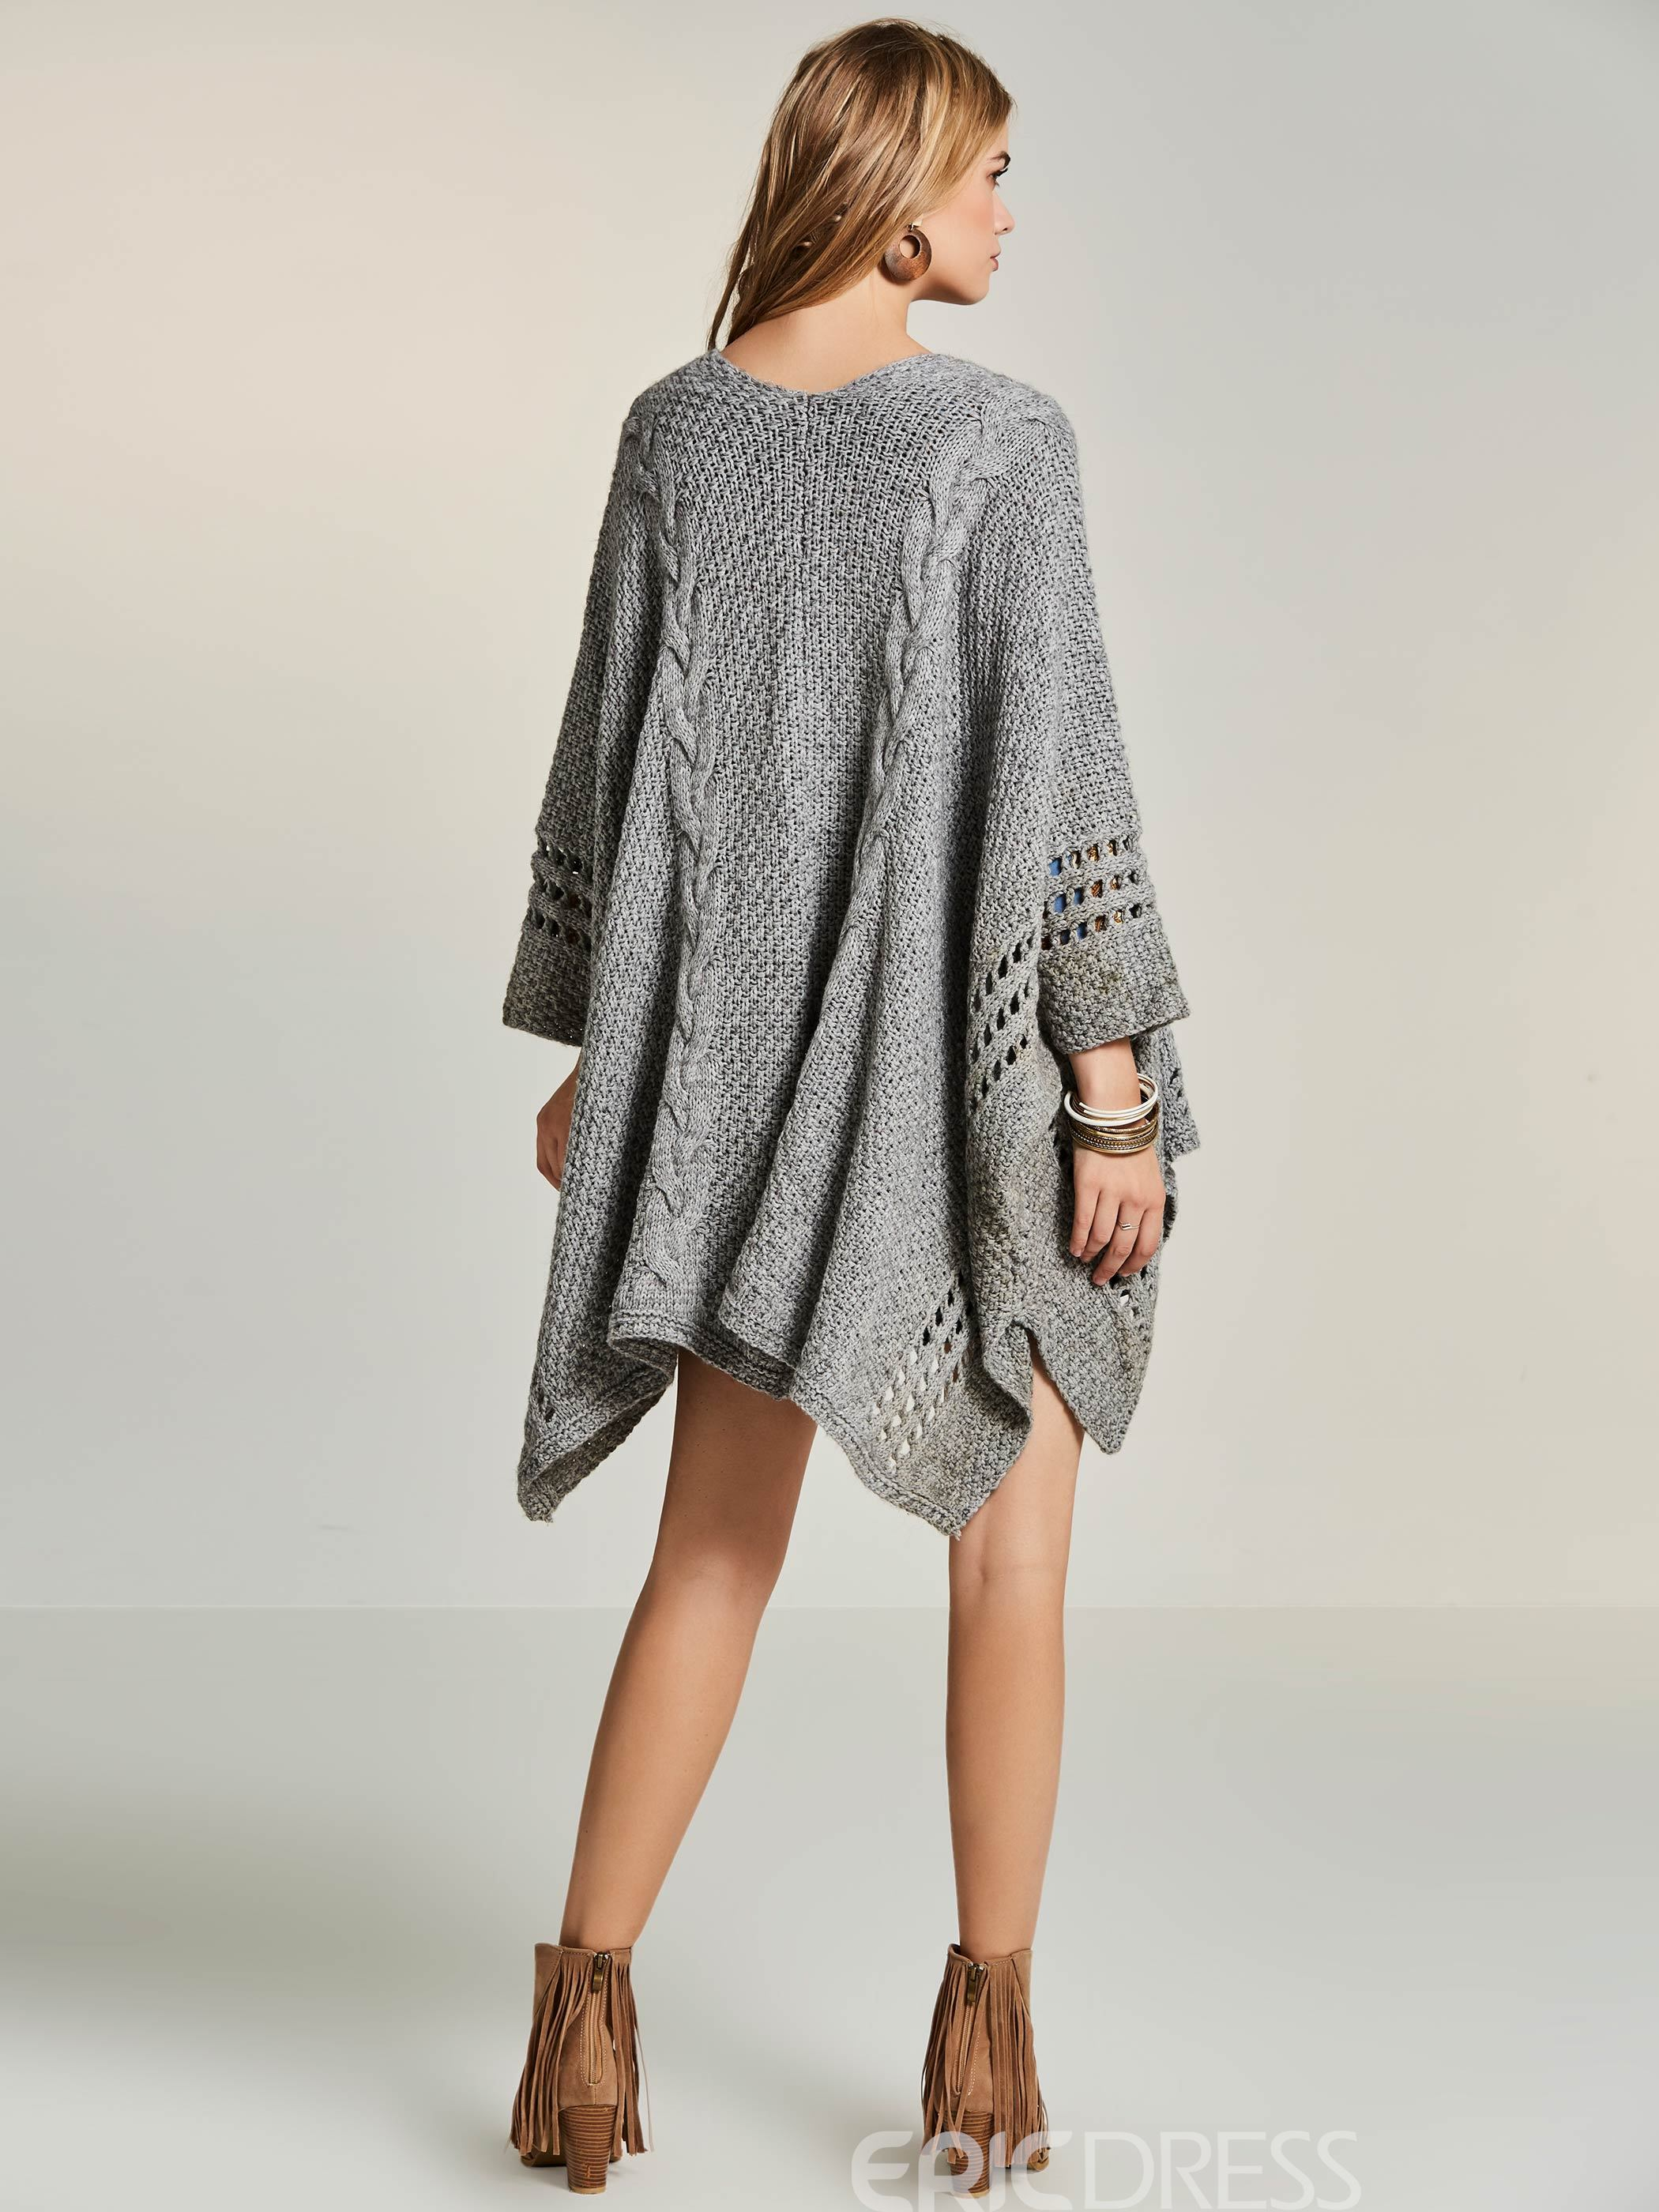 Ericdress Cape Hollow Plain Cardigan Knitwear